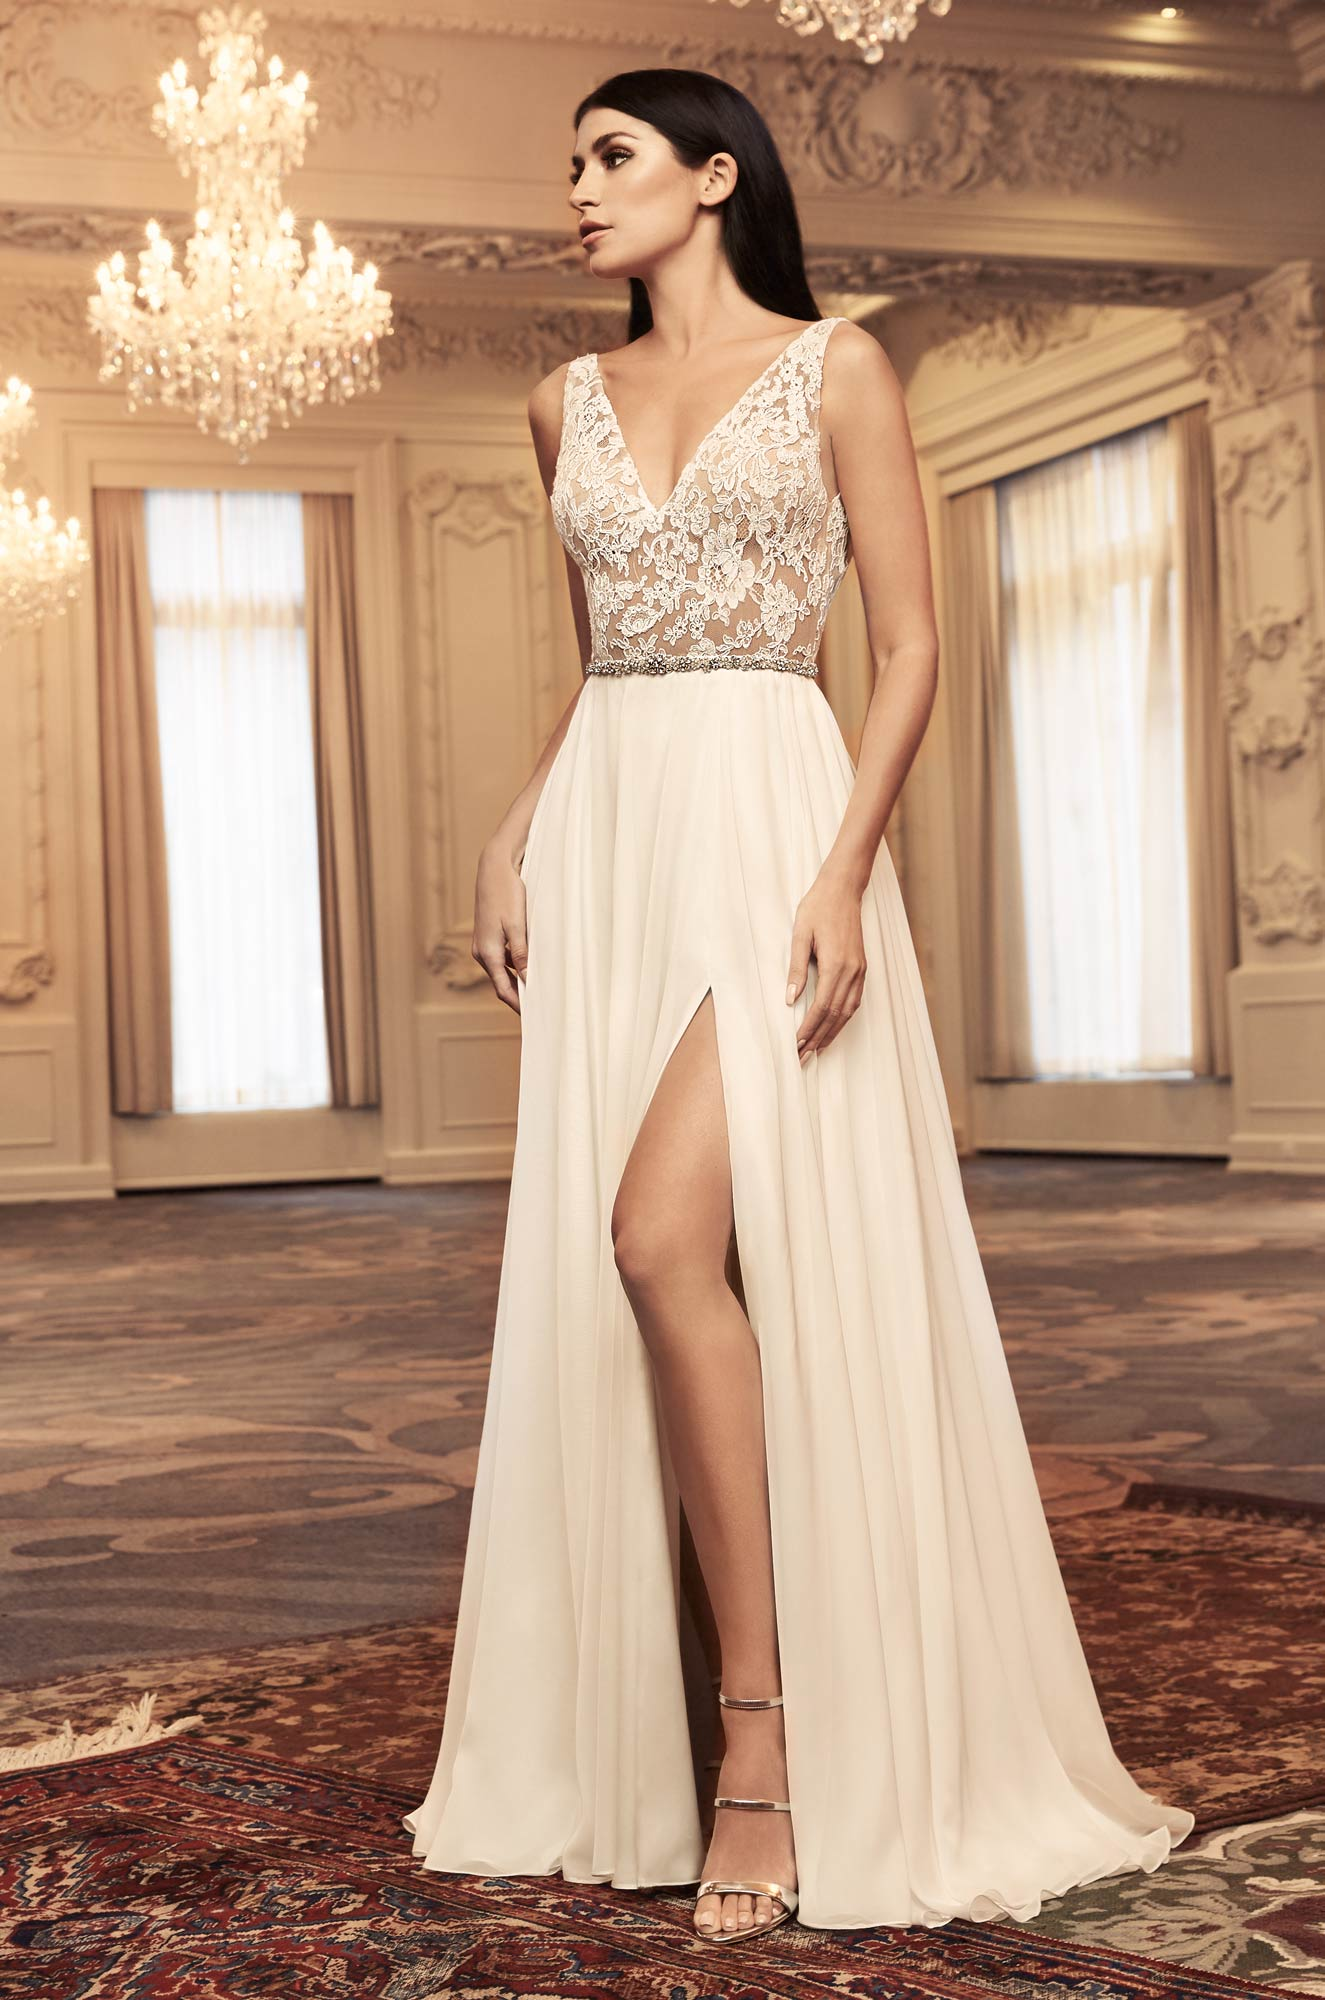 Ethereal Side Slit Wedding Dress – Style #4808 | Paloma Blanca